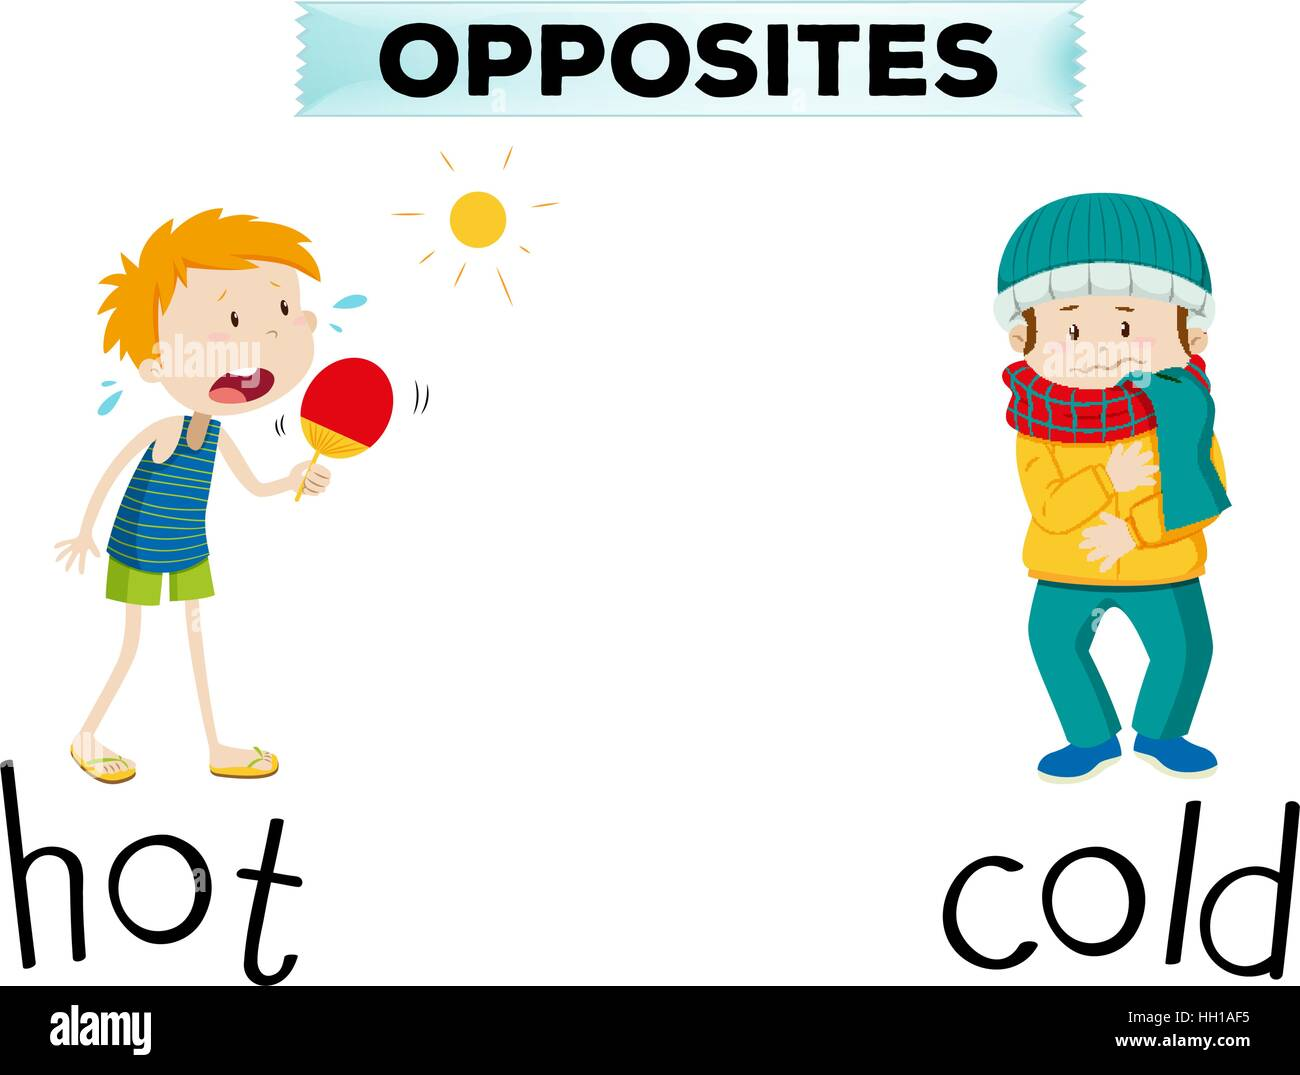 Opposite Words For Hot And Cold Illustration Stock Vector